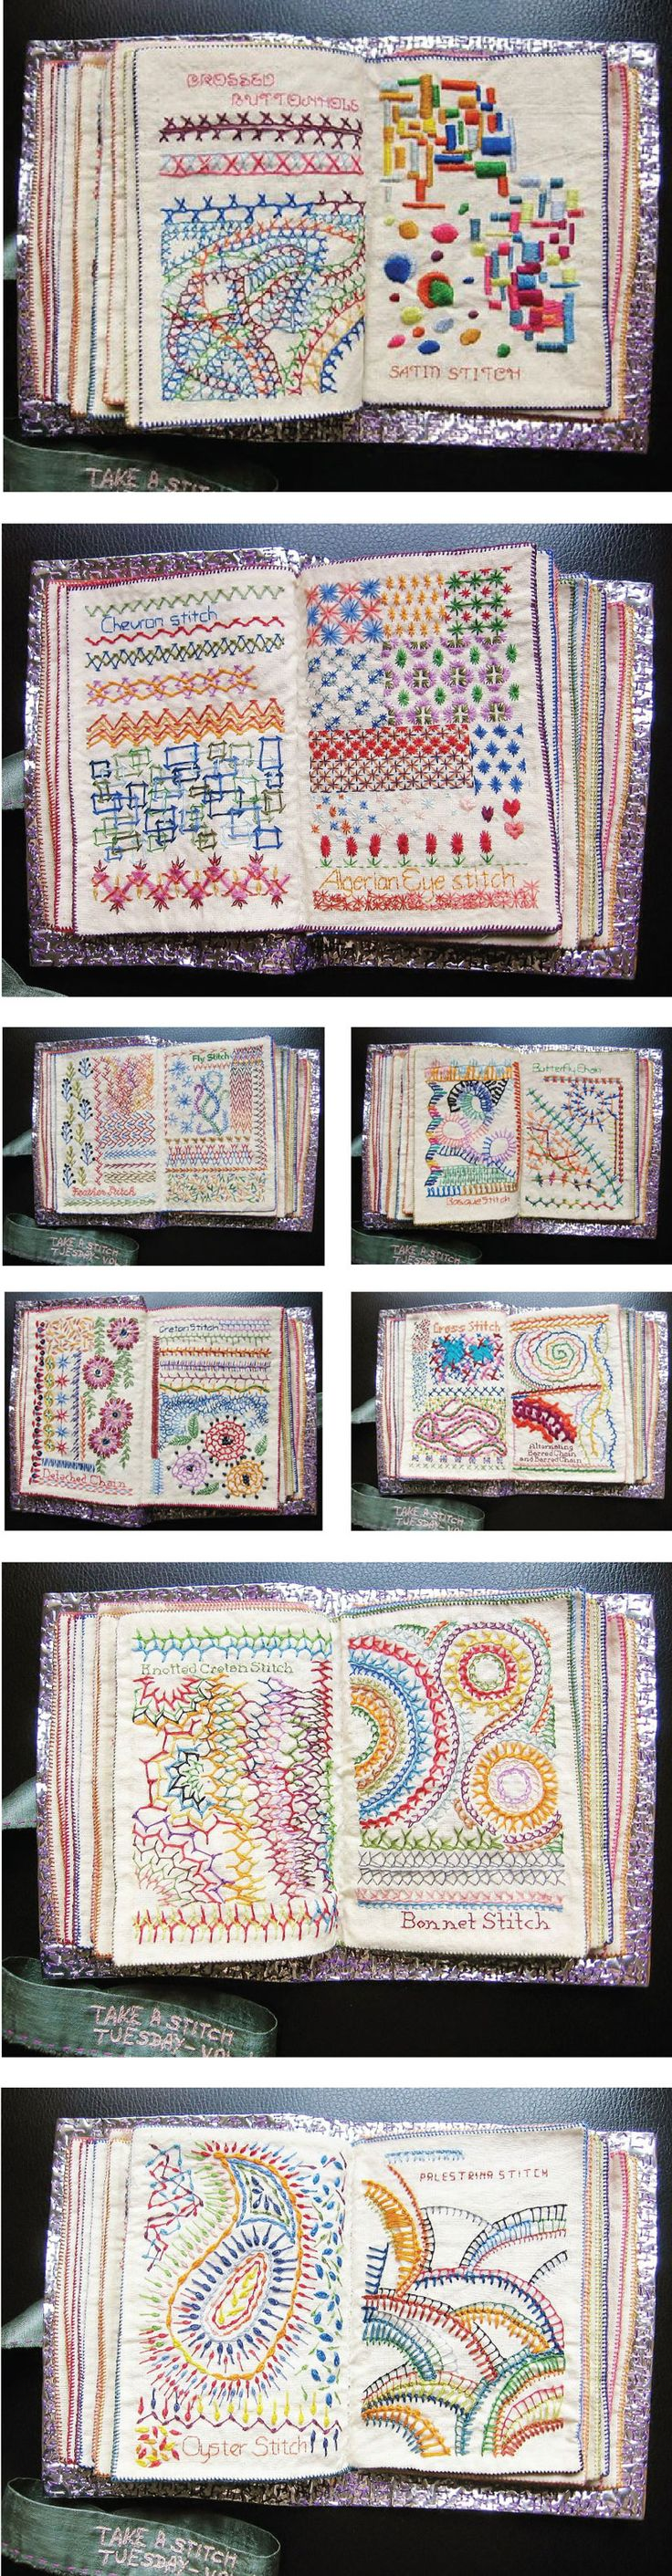 Admiring the embroidered fabric book created by Bangalore-based stitcher, Maya Matthew. Her blog, Million Little Stitches, is described as a 'creative outpourings of the stitch obsessed'. She shows…